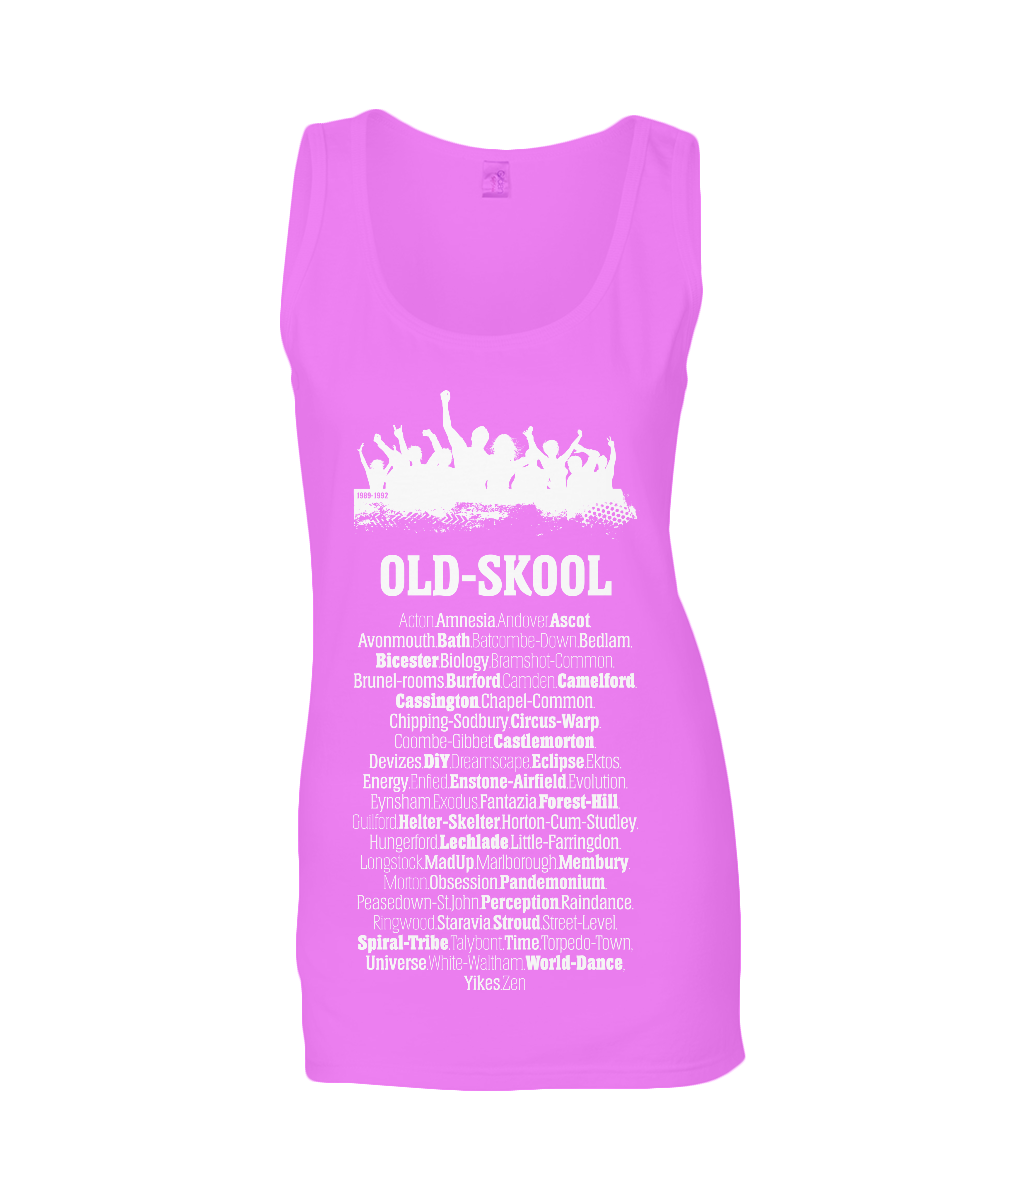 Old Skool Rave Ladies Tank Top T-shirt 0046 - Clothing - EchoWears T-Shirts & Accessories